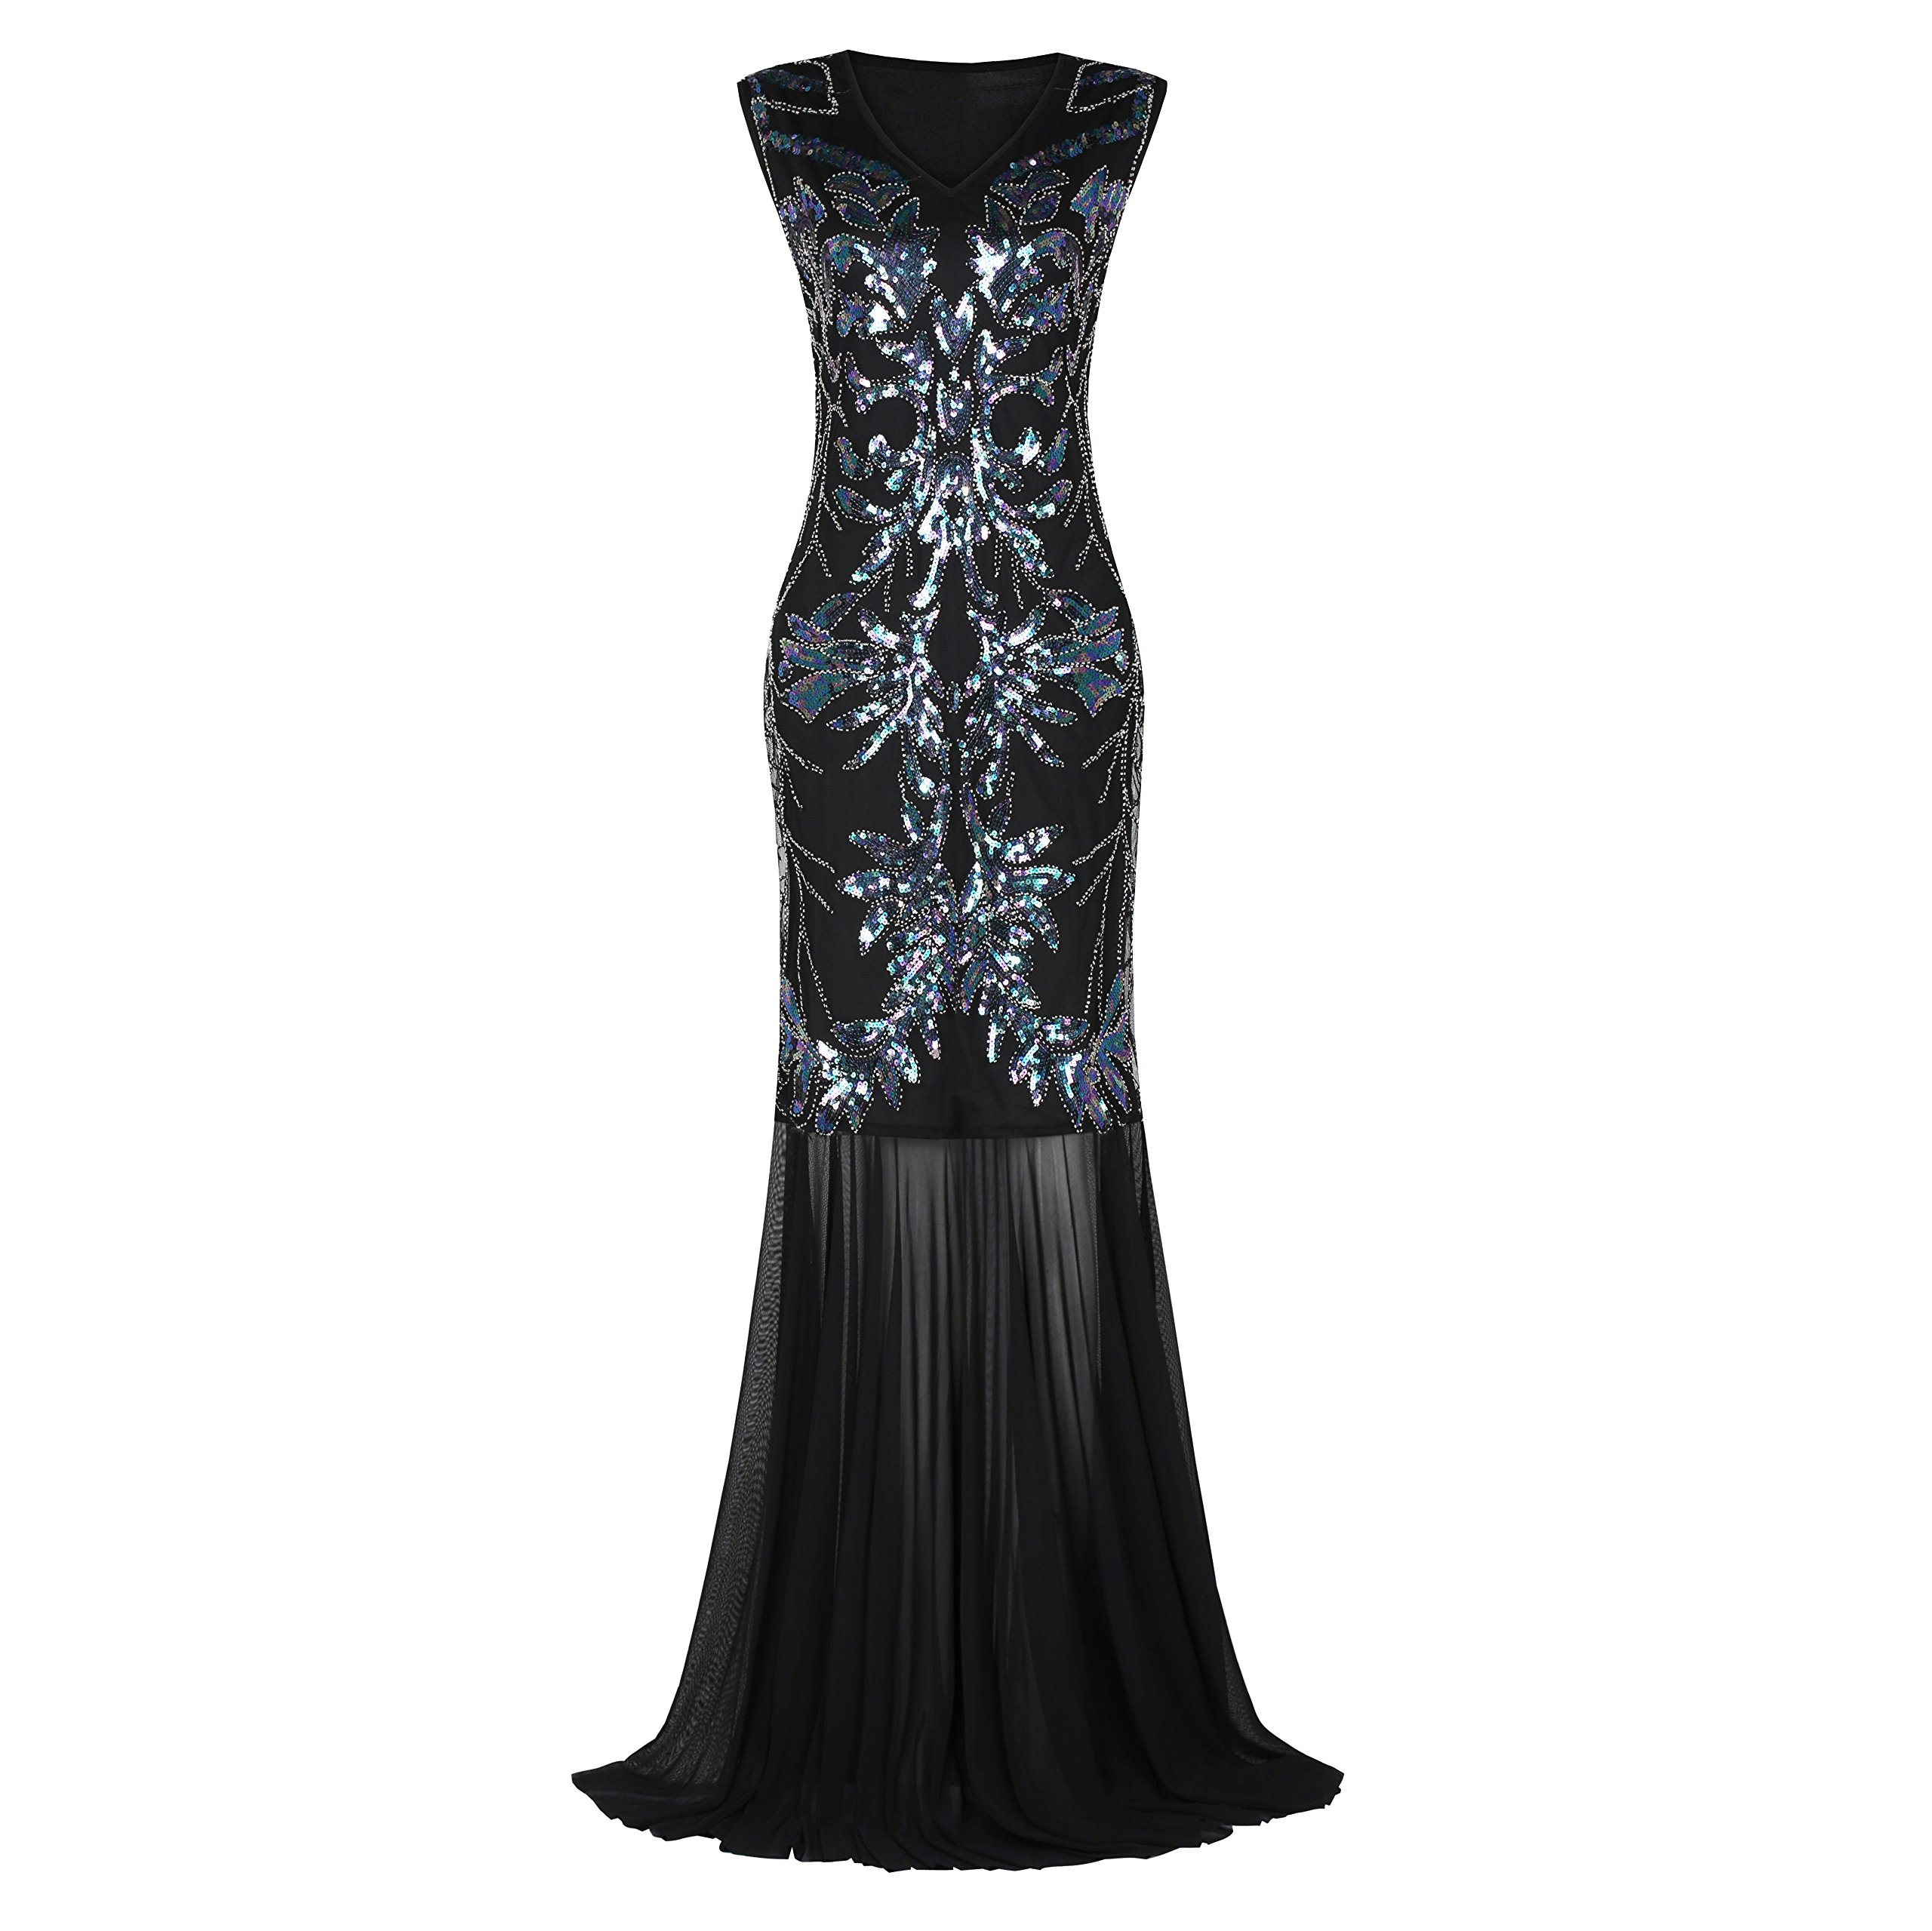 e6e565c43a U.mslady Women s Evening 1920s Ball Gown V Neck Beaded Sequined Flapper  Long Formal Prom Gatsby Maxi Dress Gold Prom Sliver 6